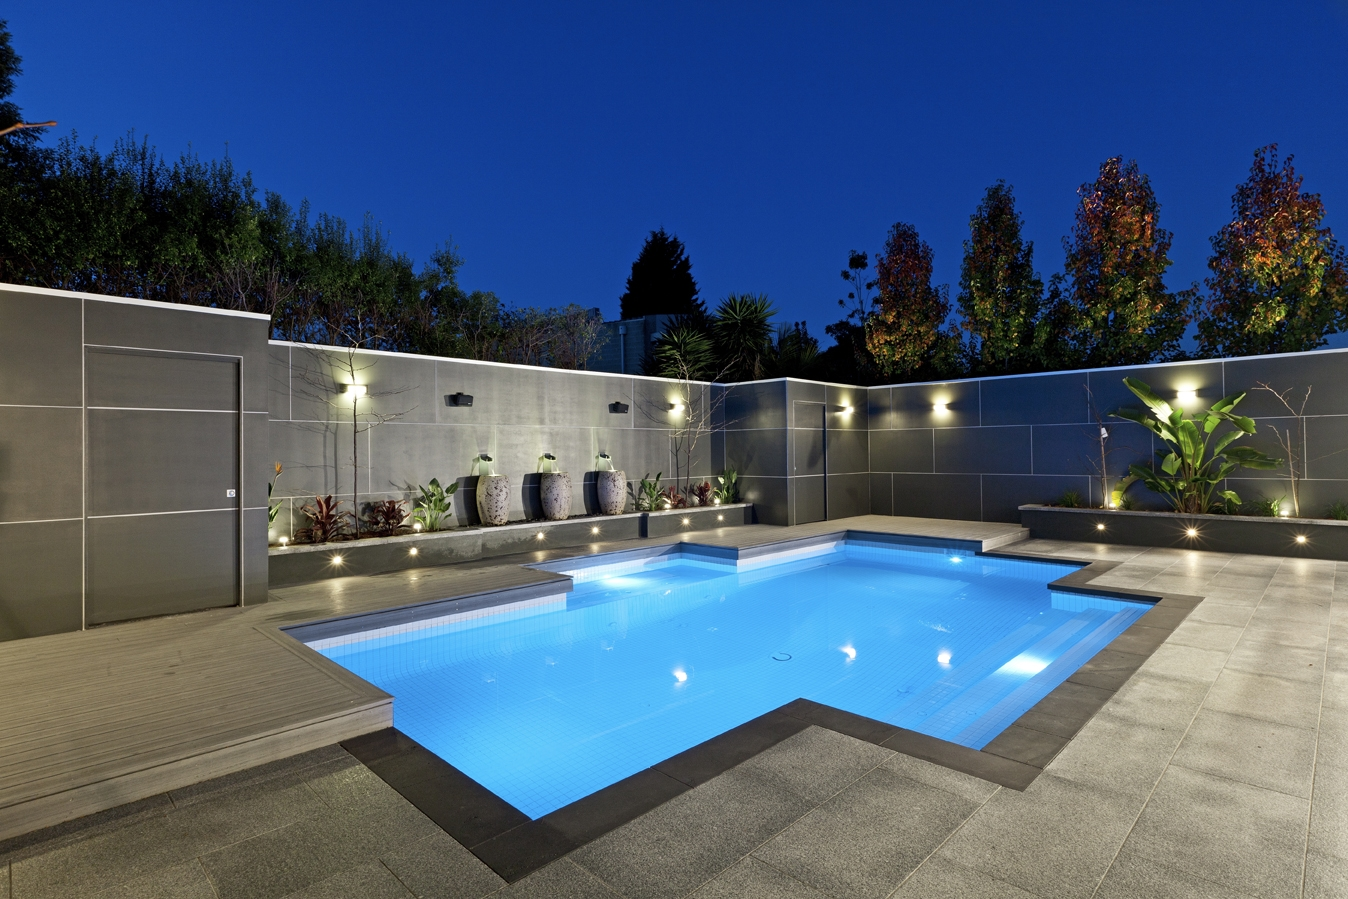 backyard backyard pool ideas backyard landscape design with pool